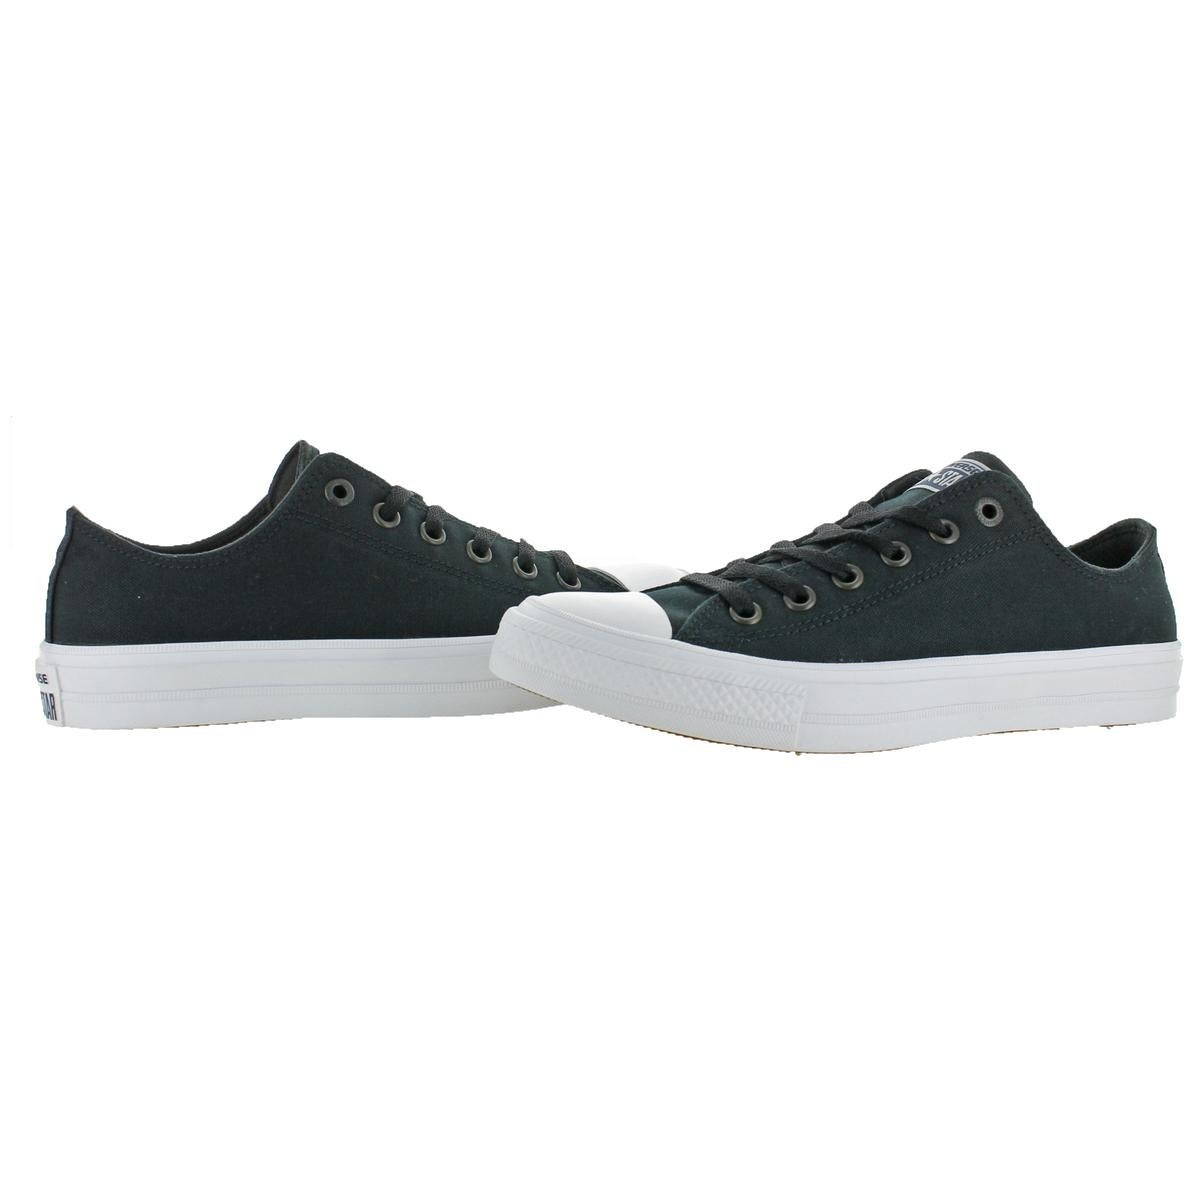 fe8ebd5ae2d5 Shop Converse Mens Chuck Taylor II Sneakers Canvas Low Top - Free Shipping  Today - Overstock - 22311392